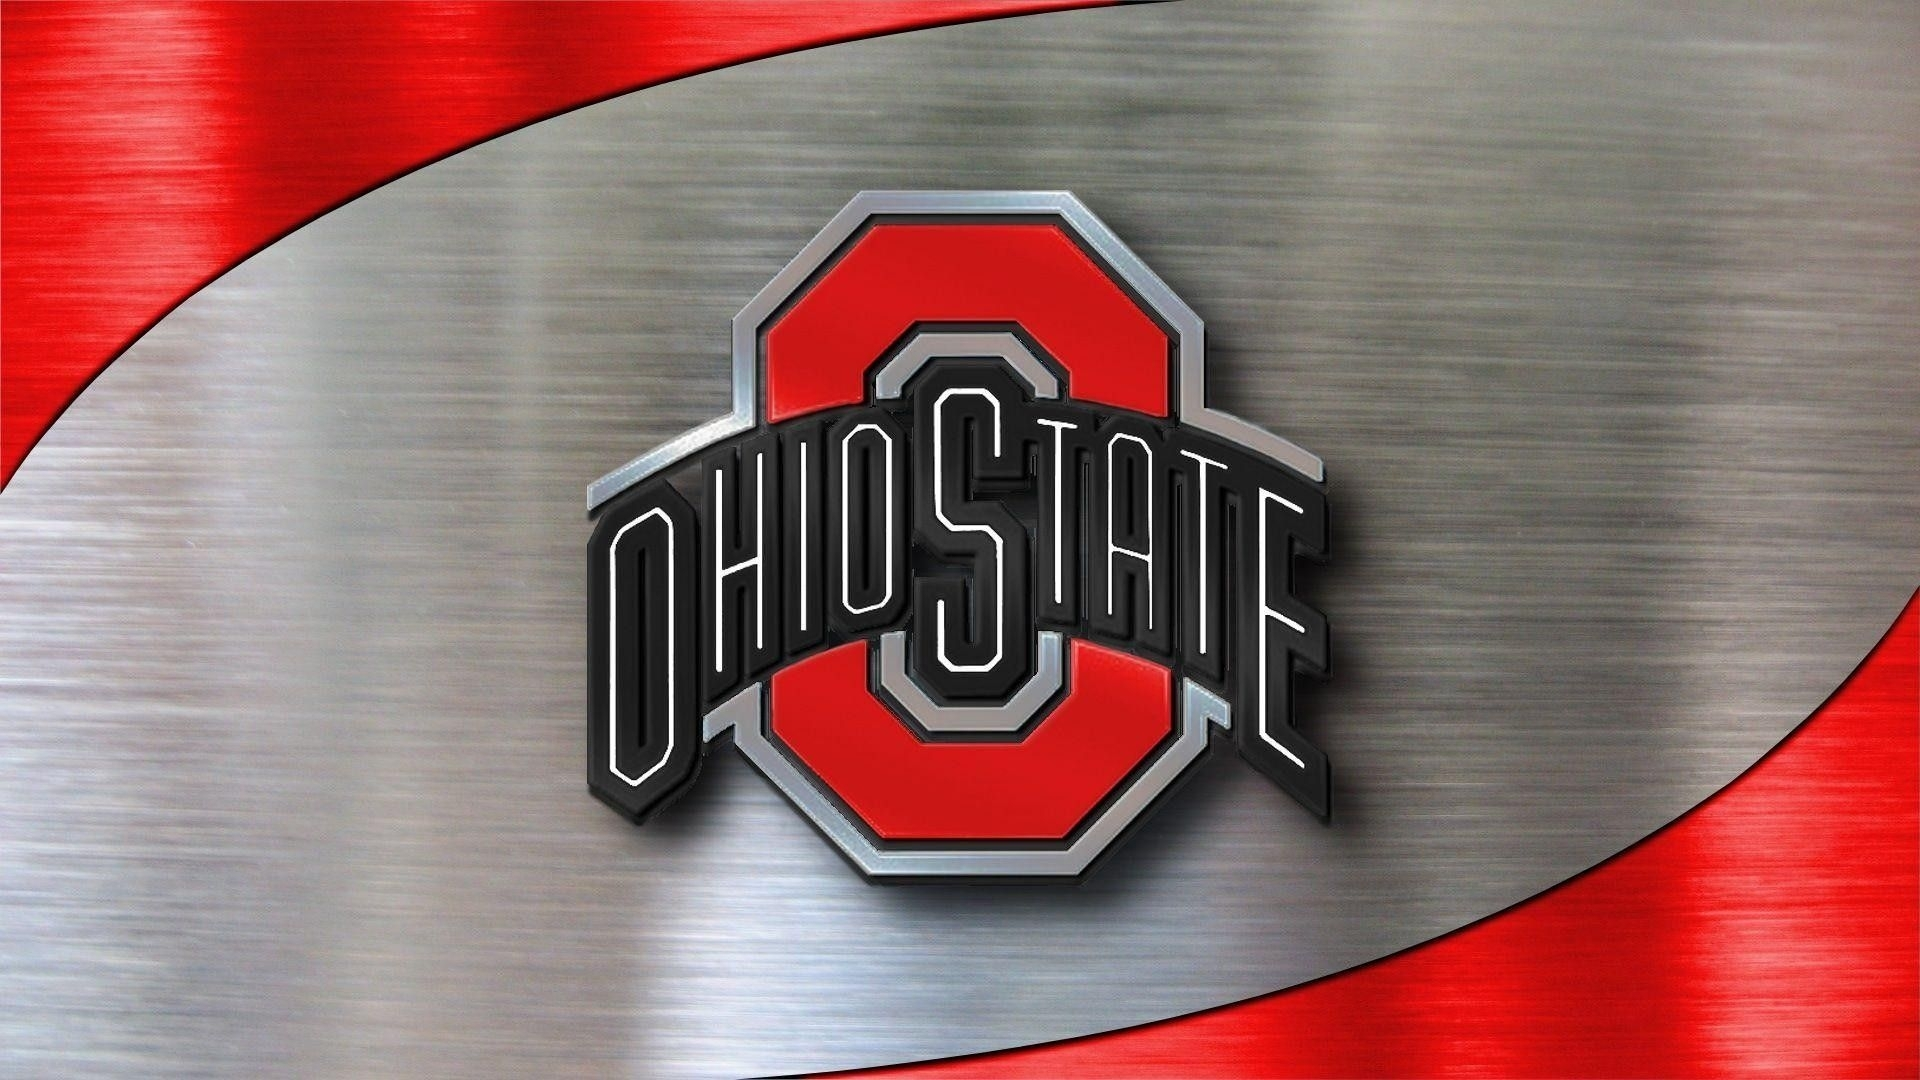 10 best ohio state wall paper full hd 1080p for pc background 2019 - Ohio state football wallpaper ...